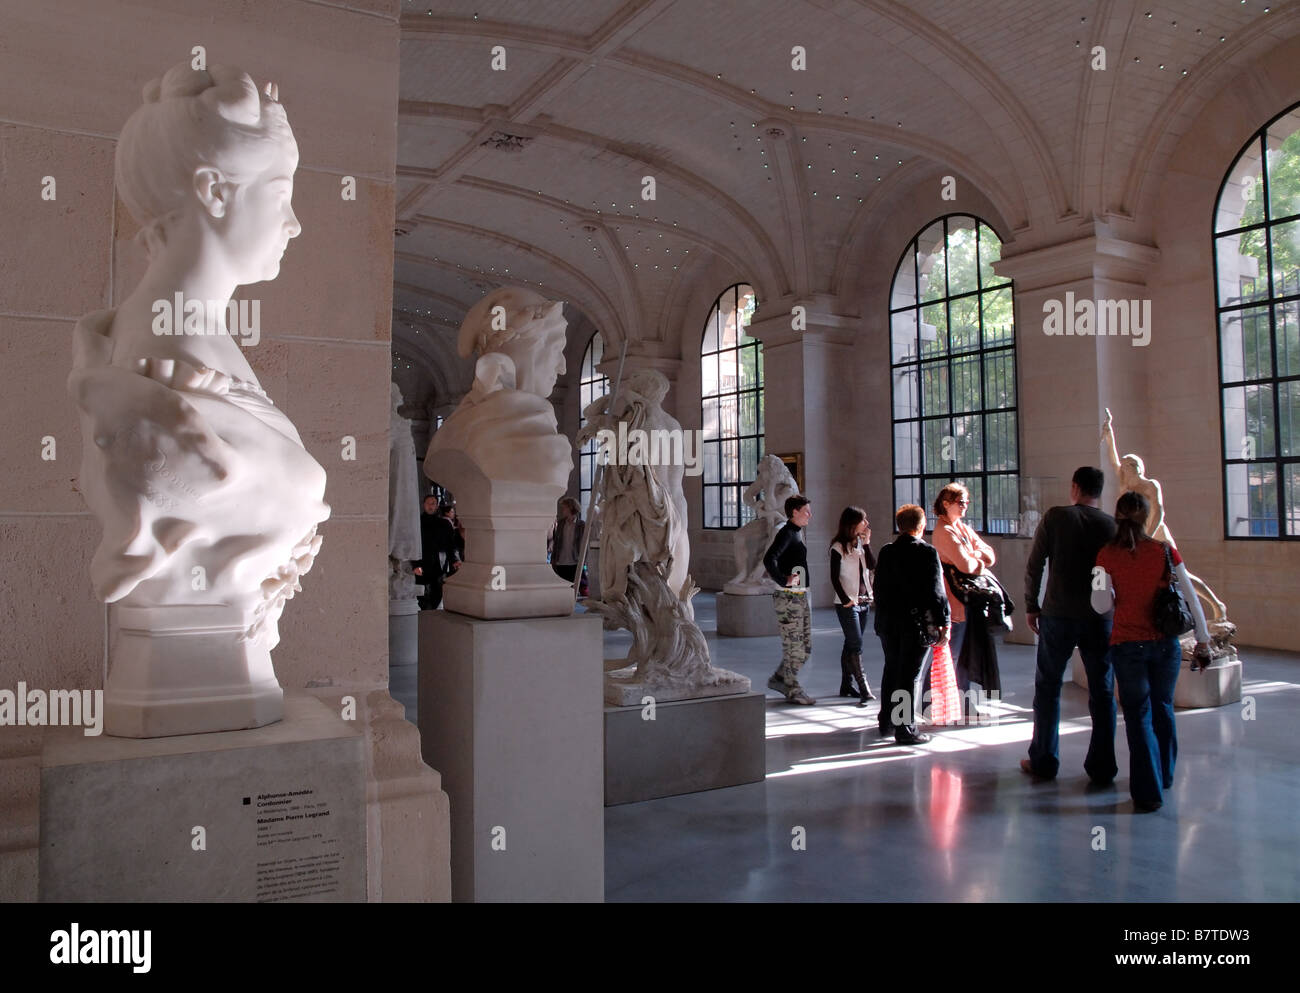 Sculpture gallery in the Palais des Beaux Art, Lille, France Stock Photo